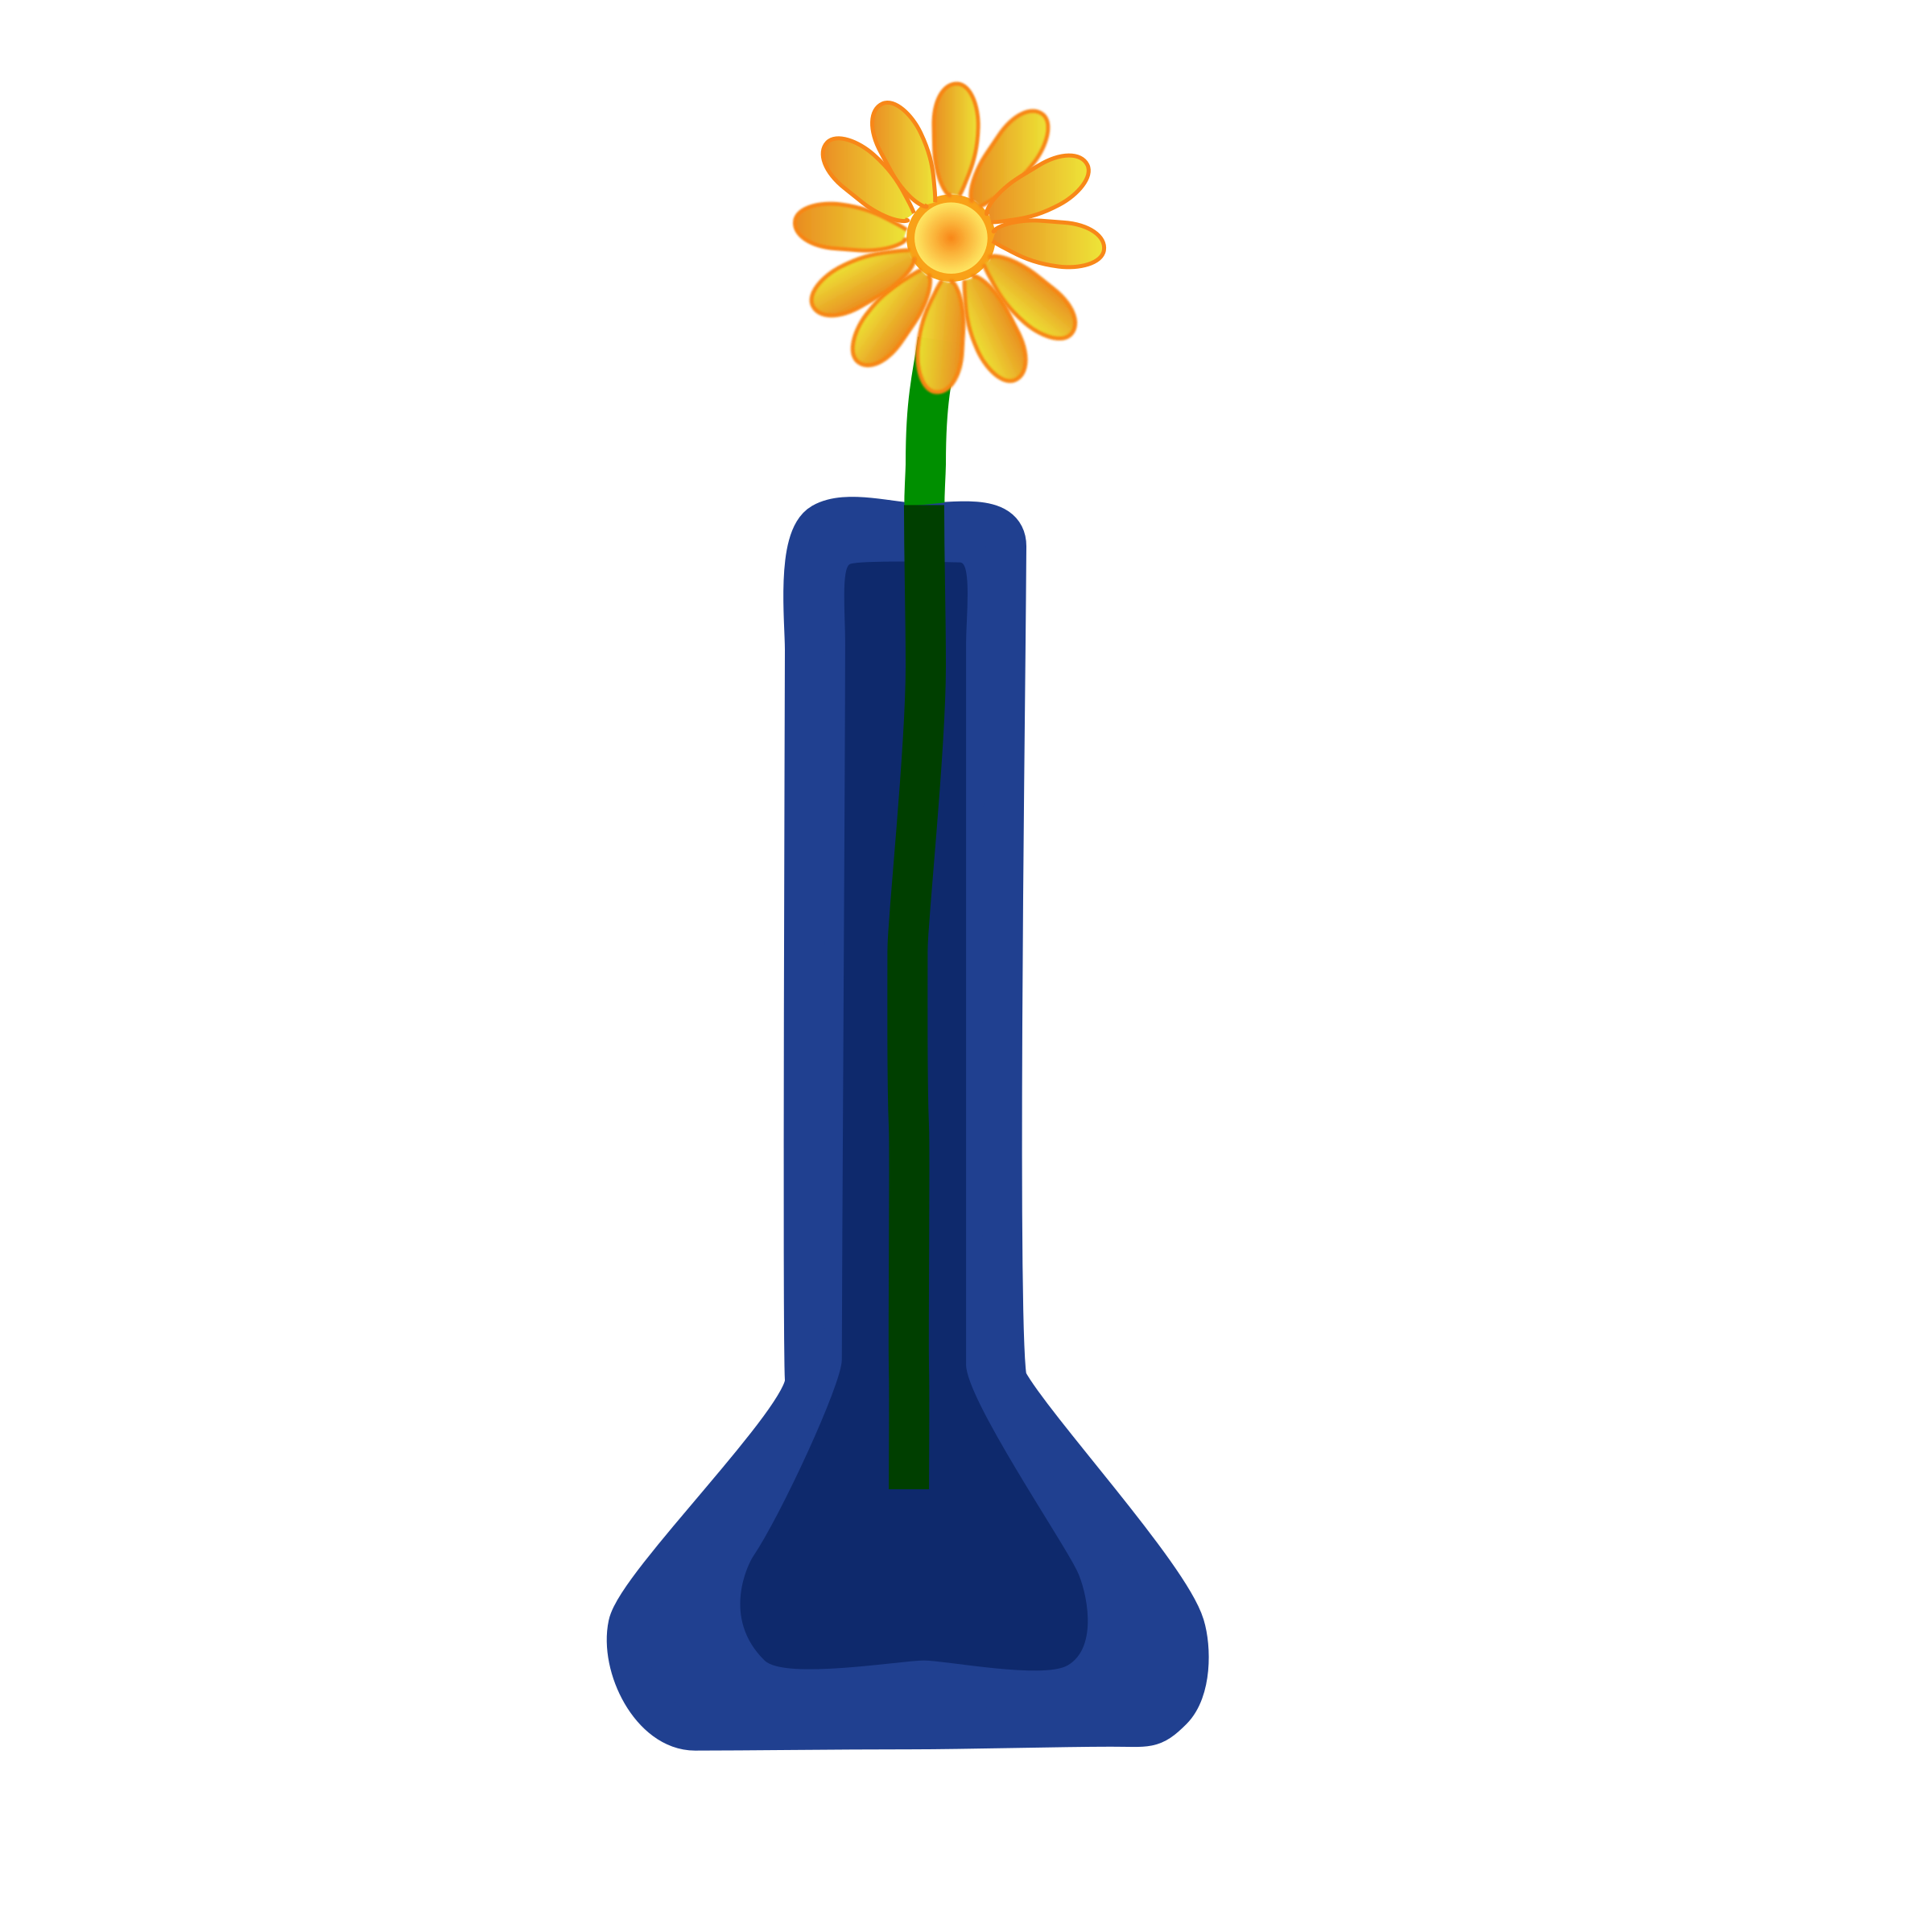 Flower in a vase clipart picture library library Clipart Flower In Vase Blue Png - 1550 - TransparentPNG picture library library